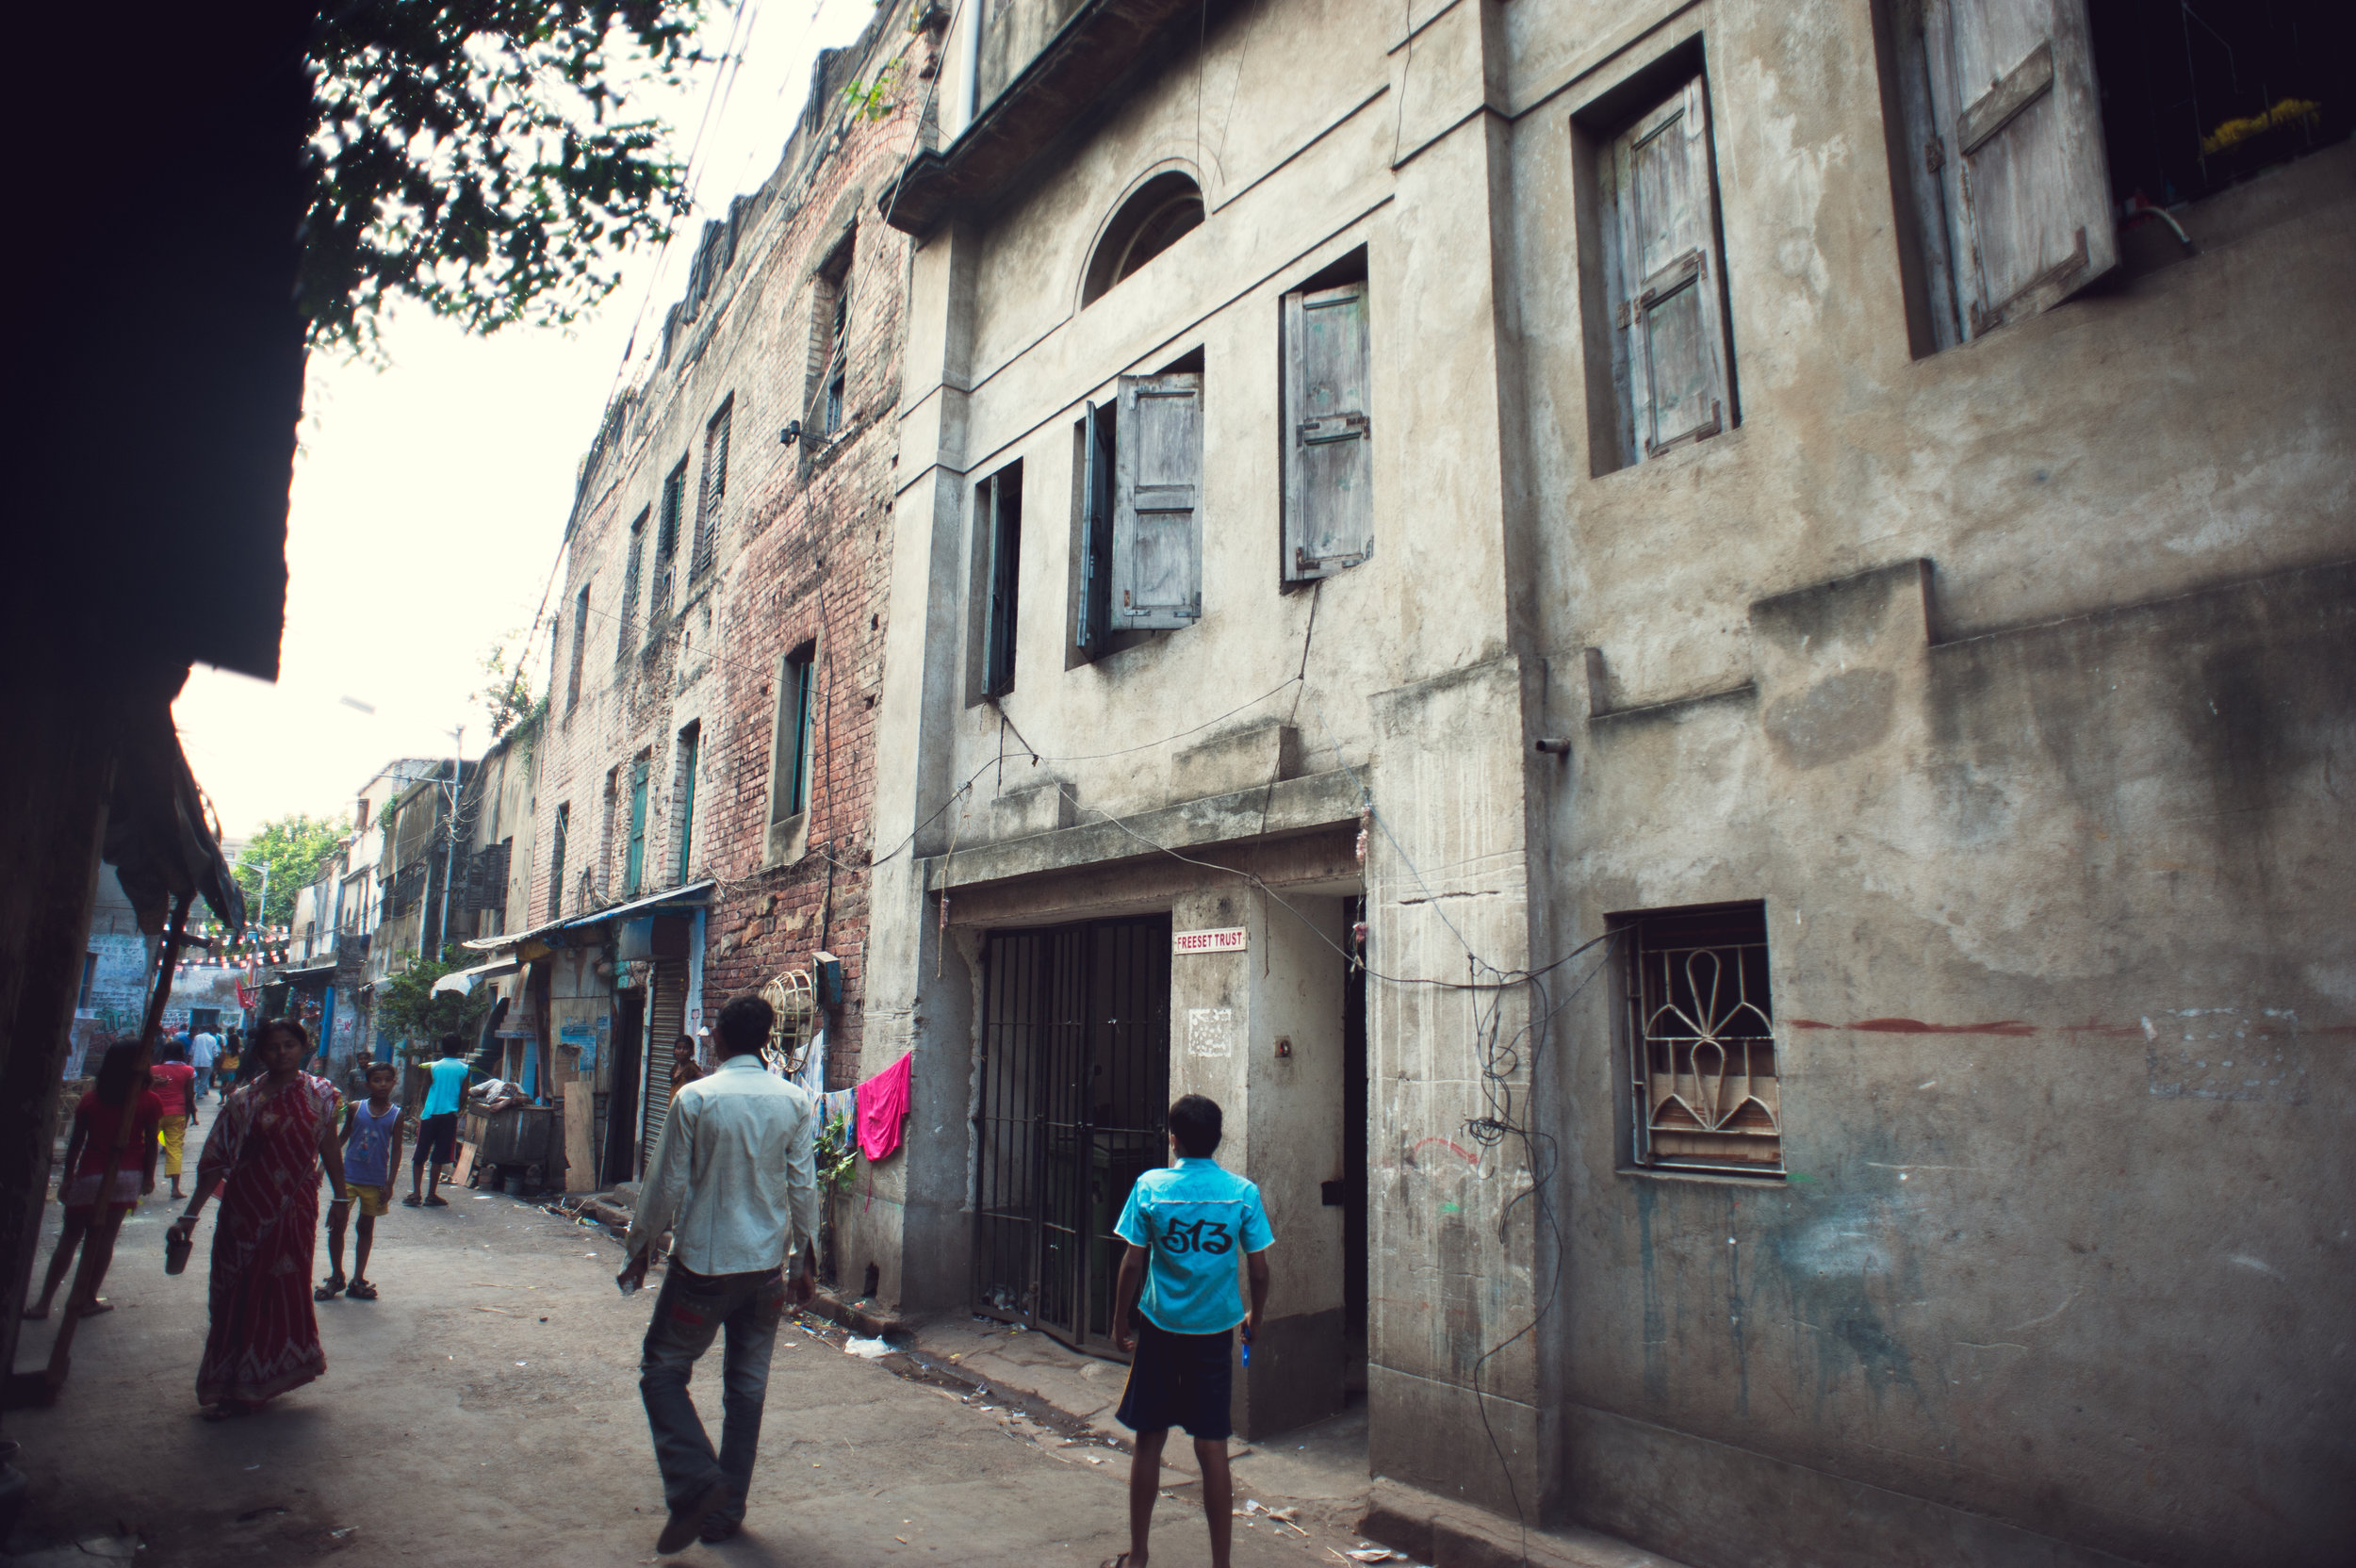 Freeset calcutta.jpg